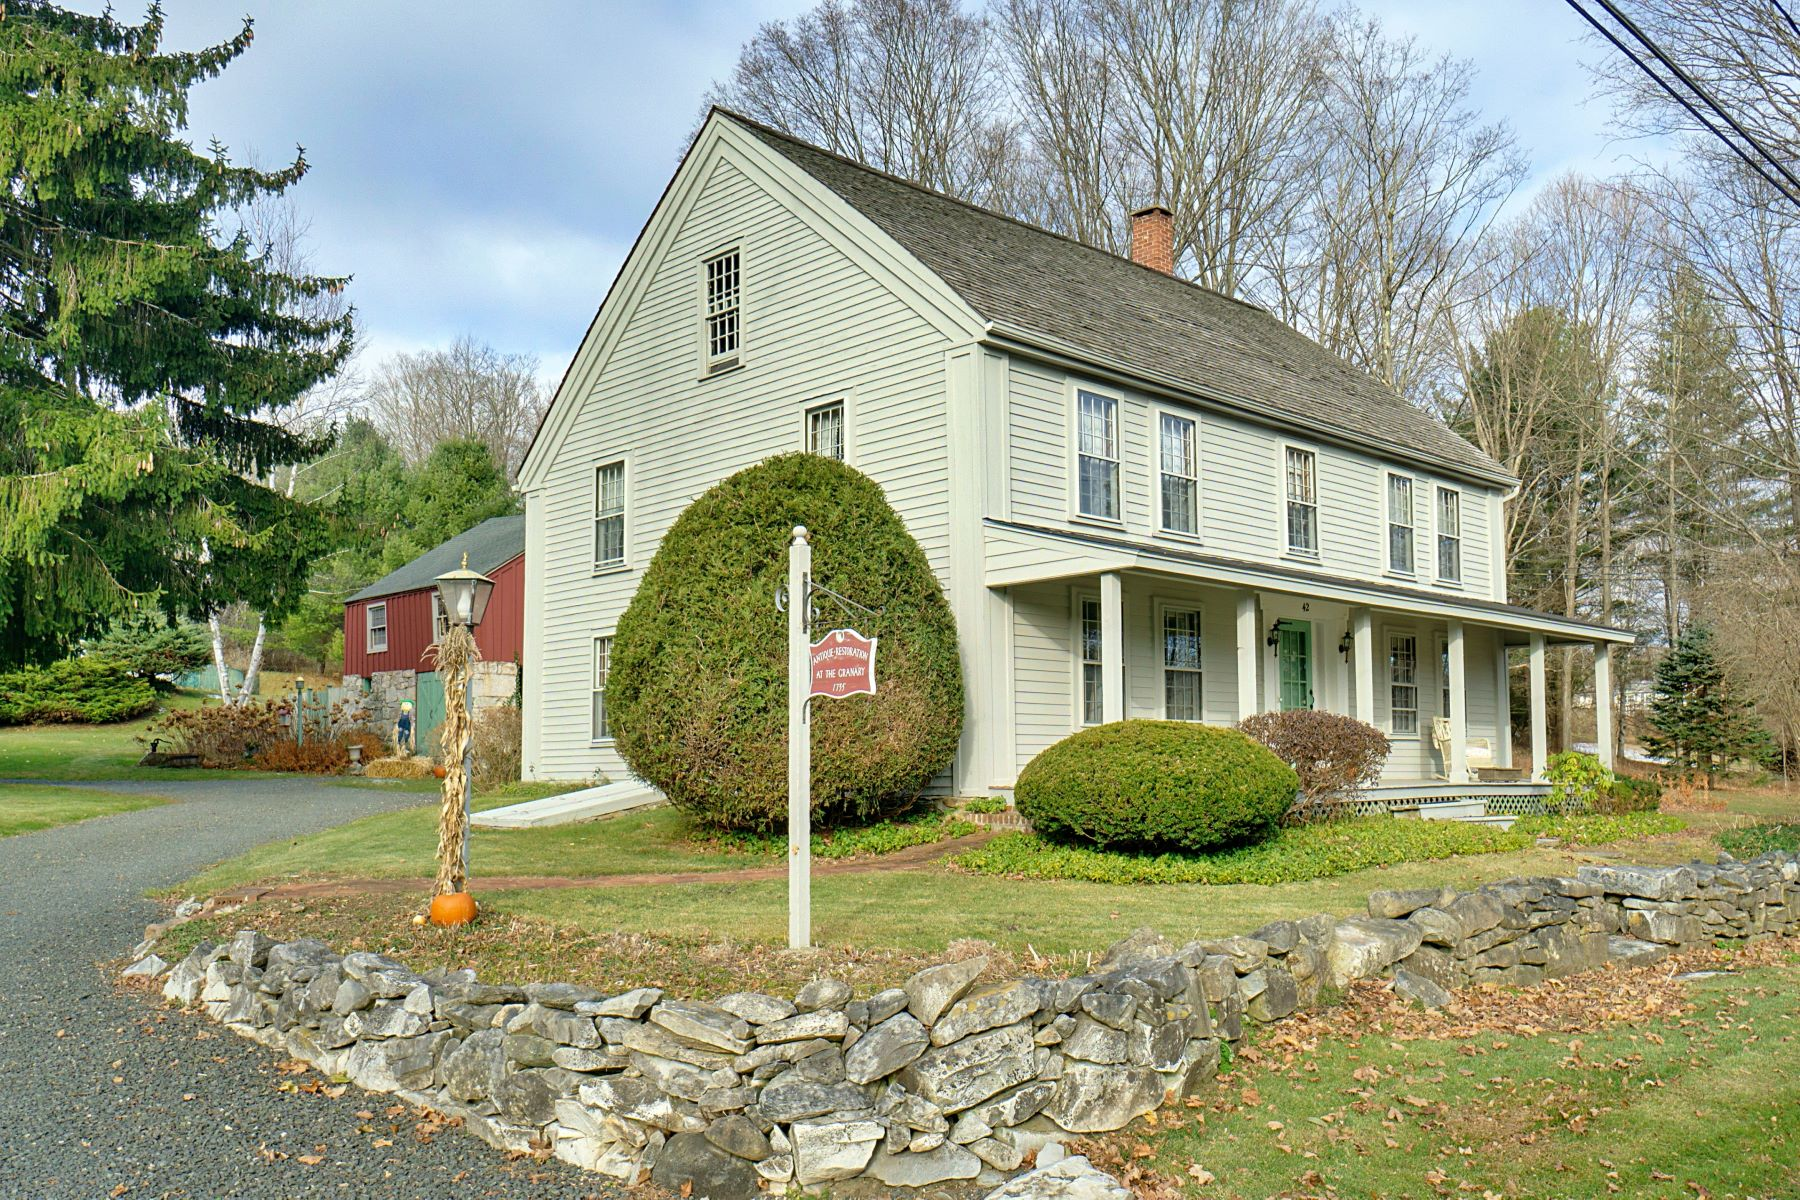 Single Family Homes for Sale at Charming Compound with a Stunning 1790 Farmhouse 42 Golden Hill Rd Lenox, Massachusetts 01240 United States